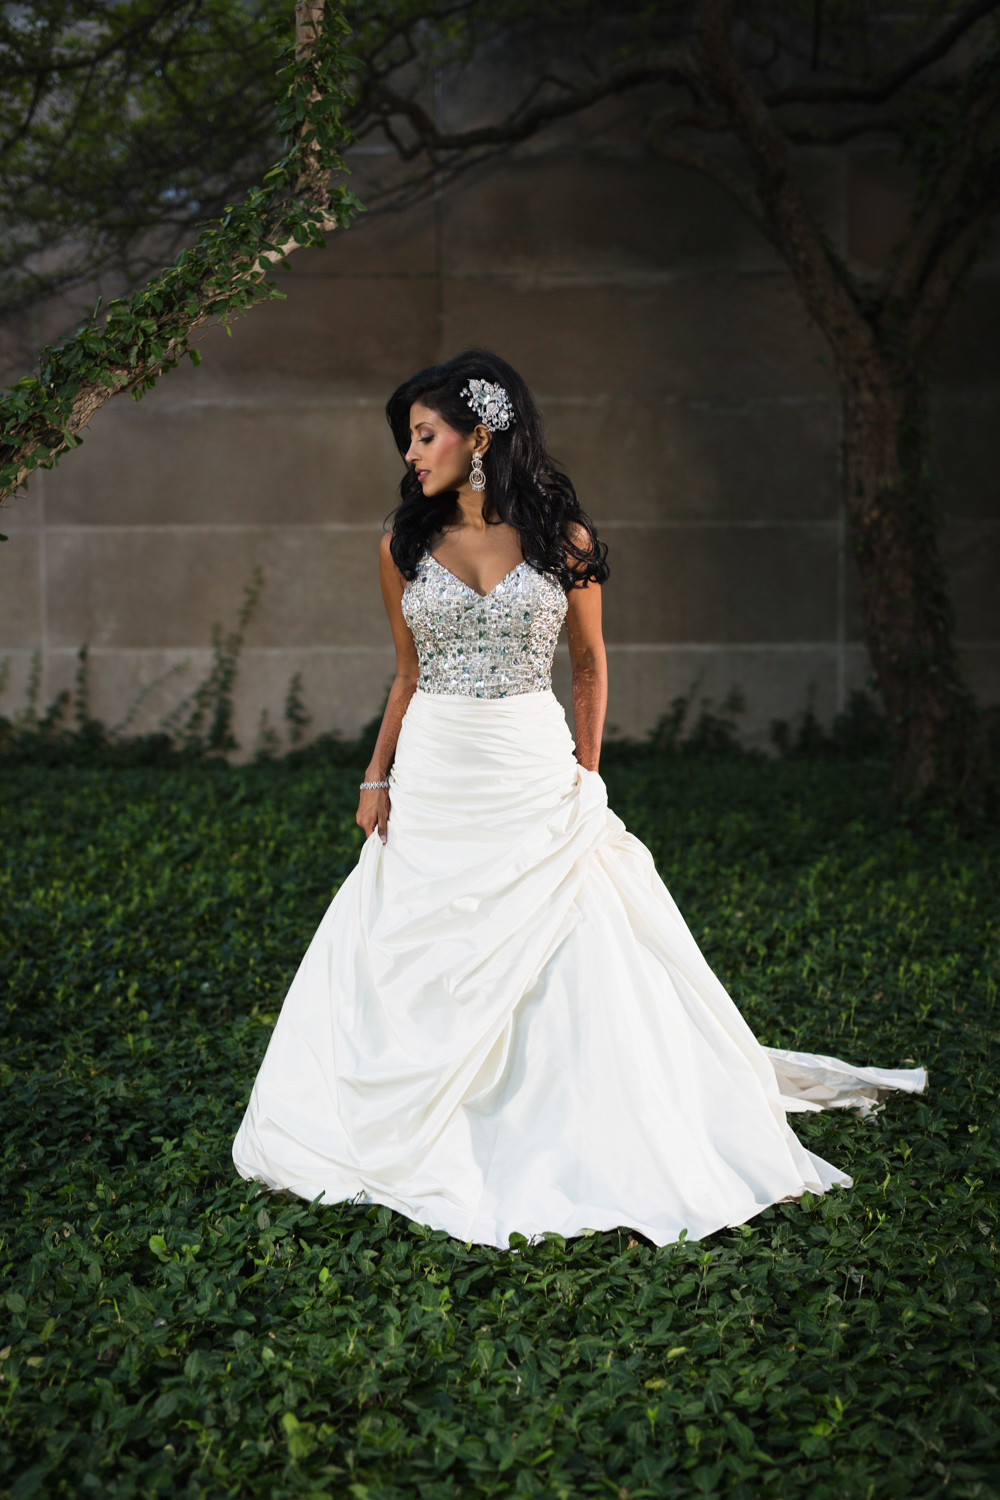 Bridal portrait in downtown Chicago.